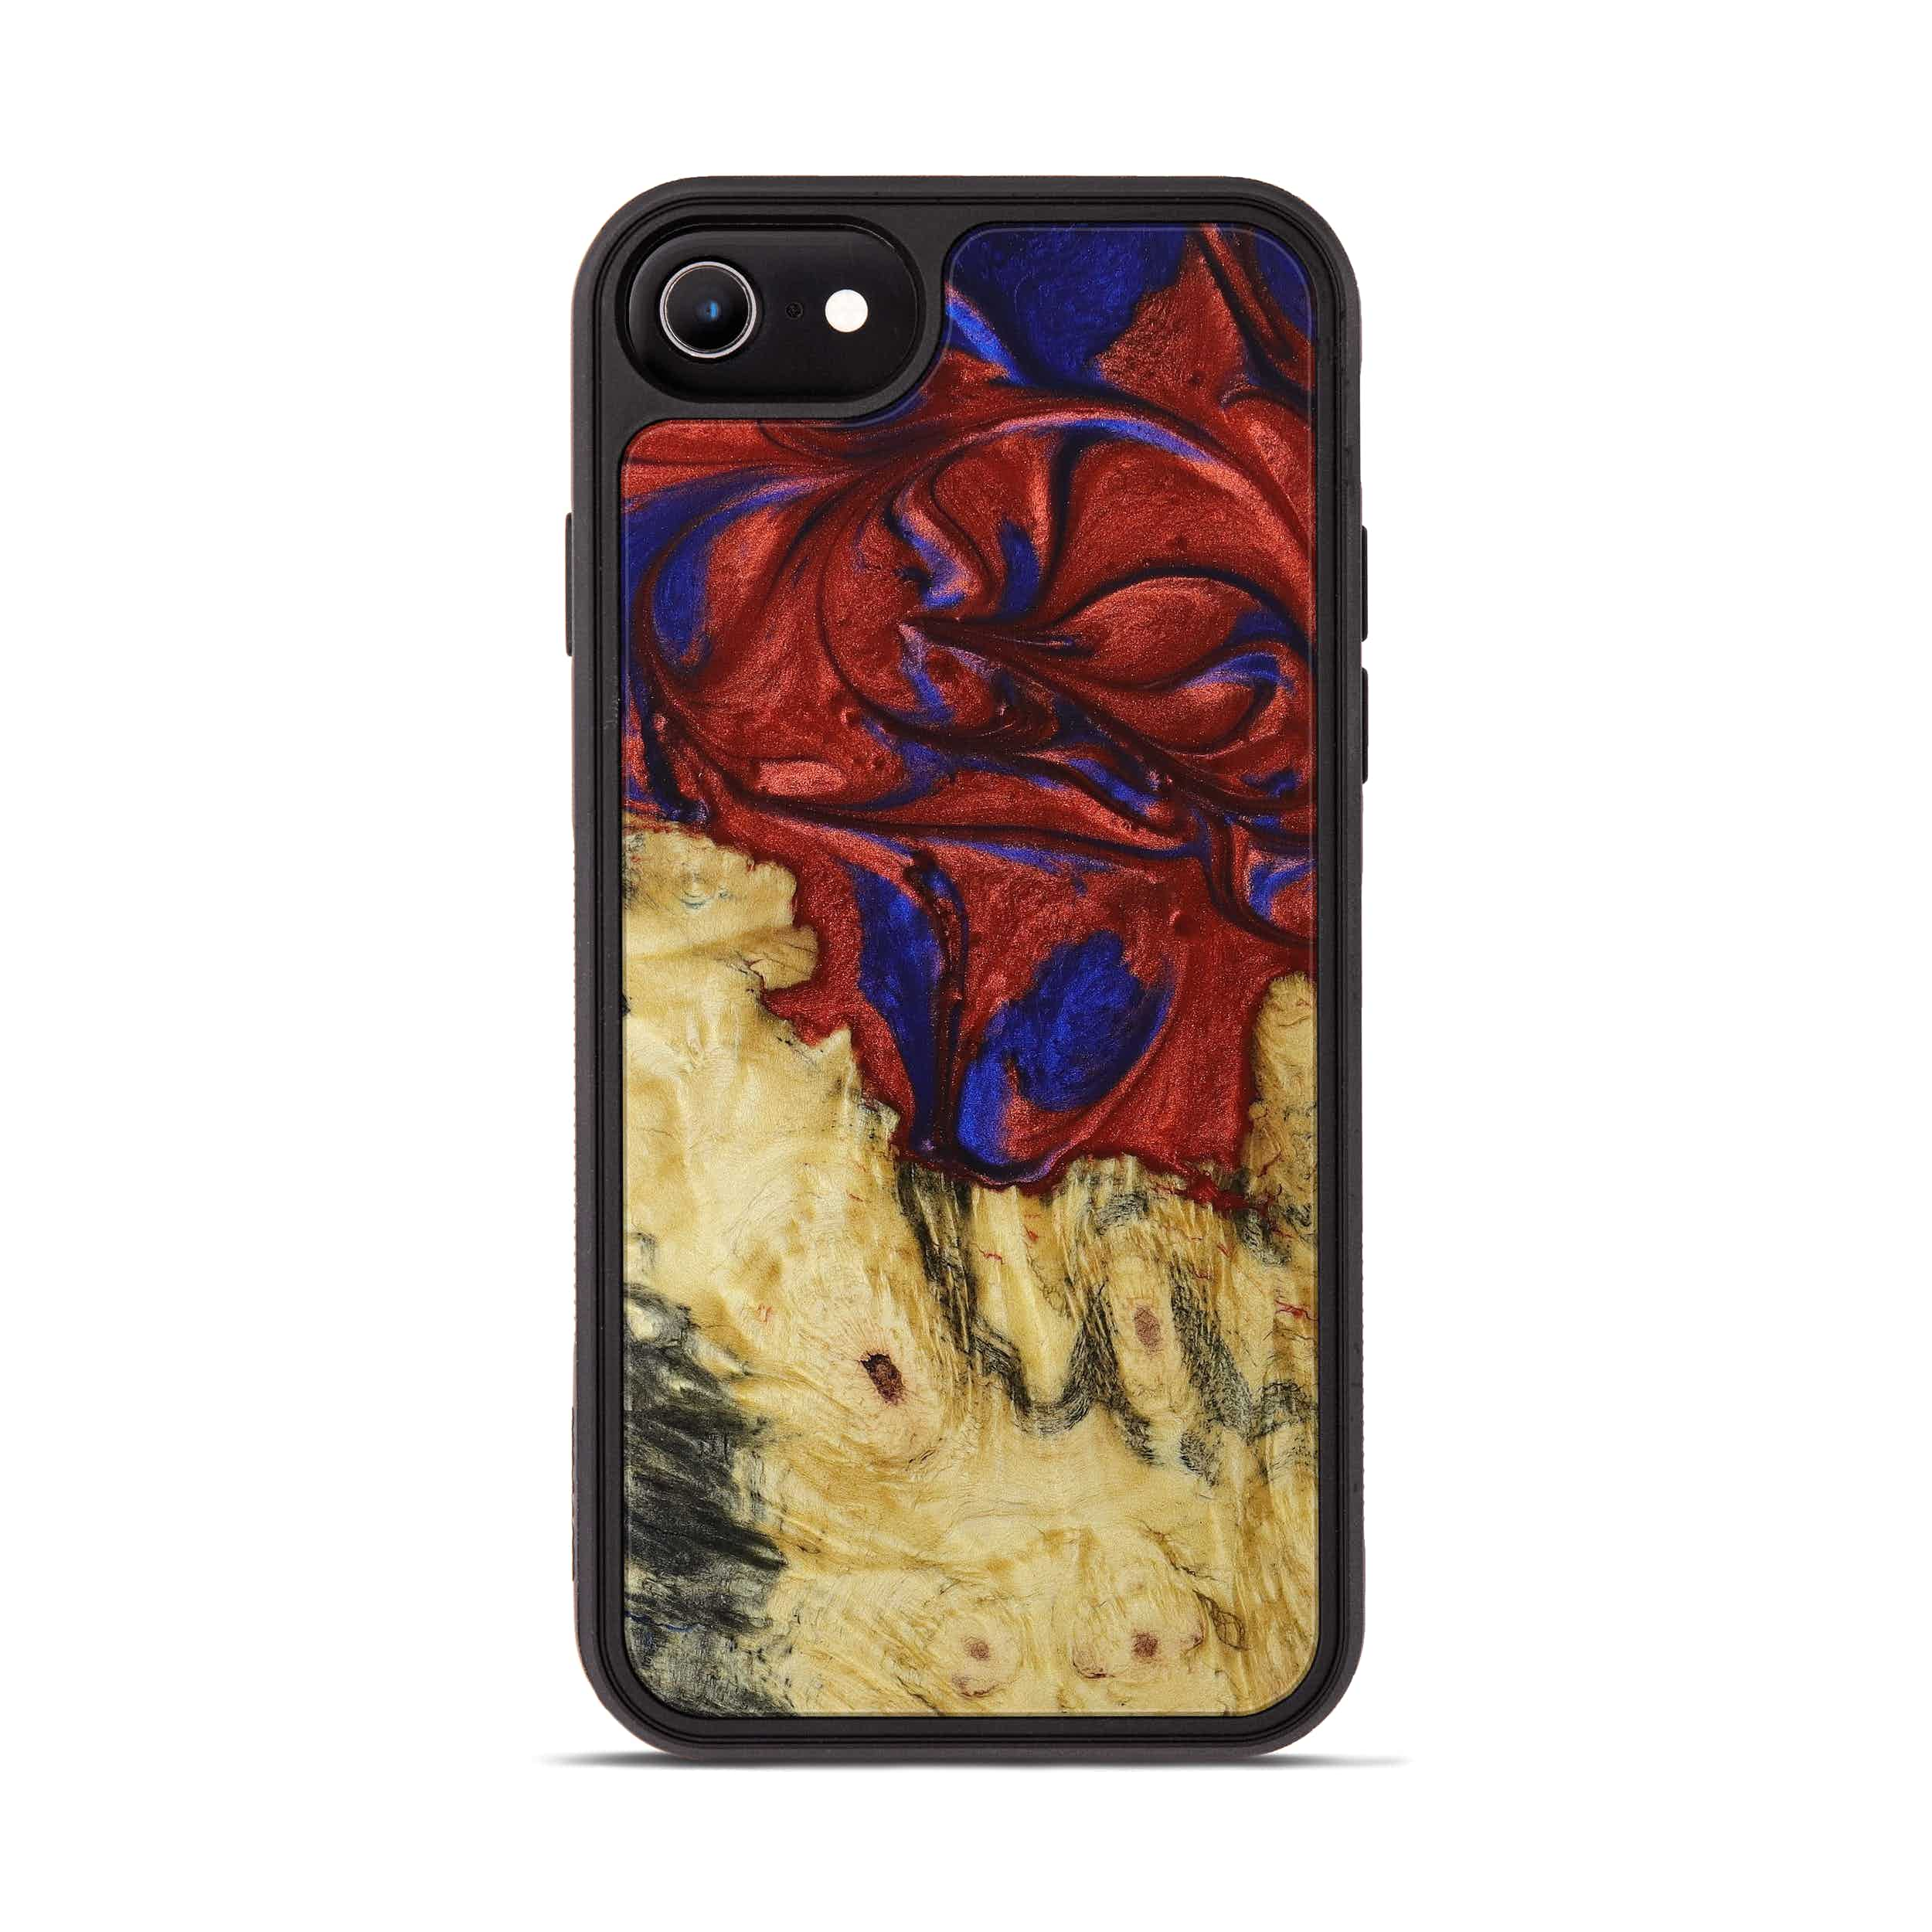 iPhone 6s Wood+Resin Phone Case - Dzung (Blue & Red, 395961)